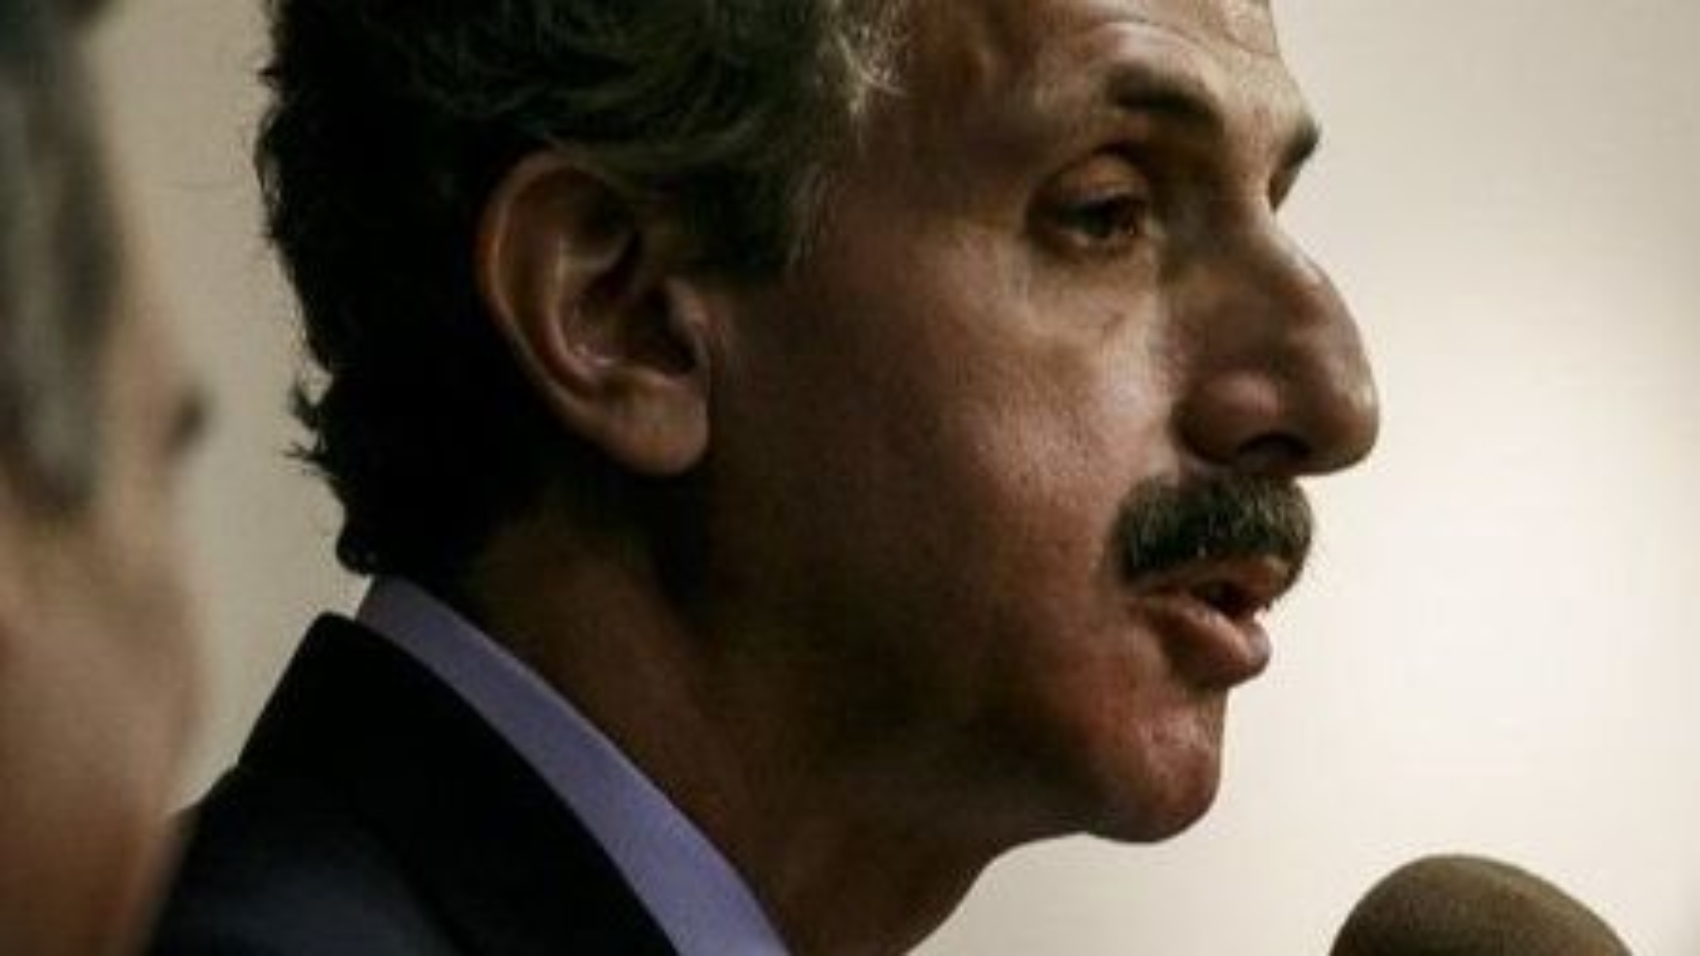 MikeFeuer